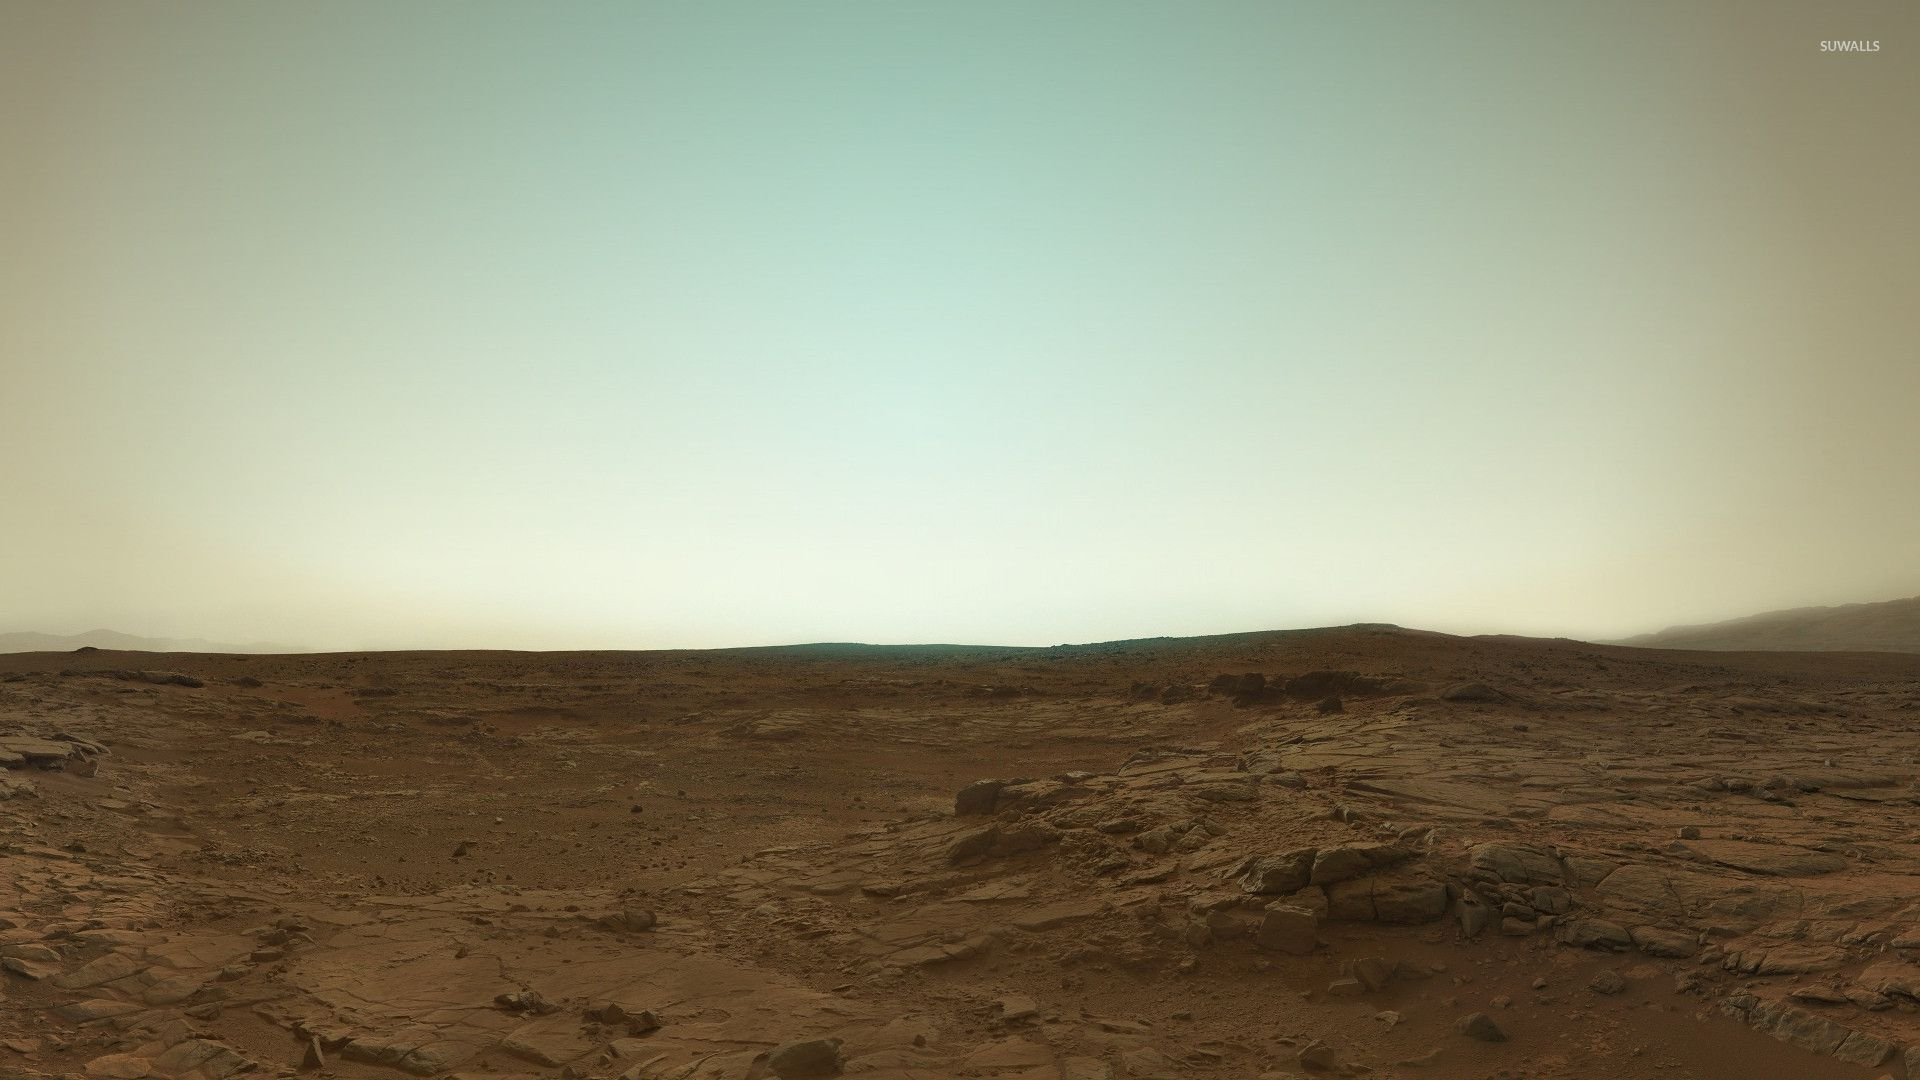 Mars Surface Wallpaper - WallpaperSafari